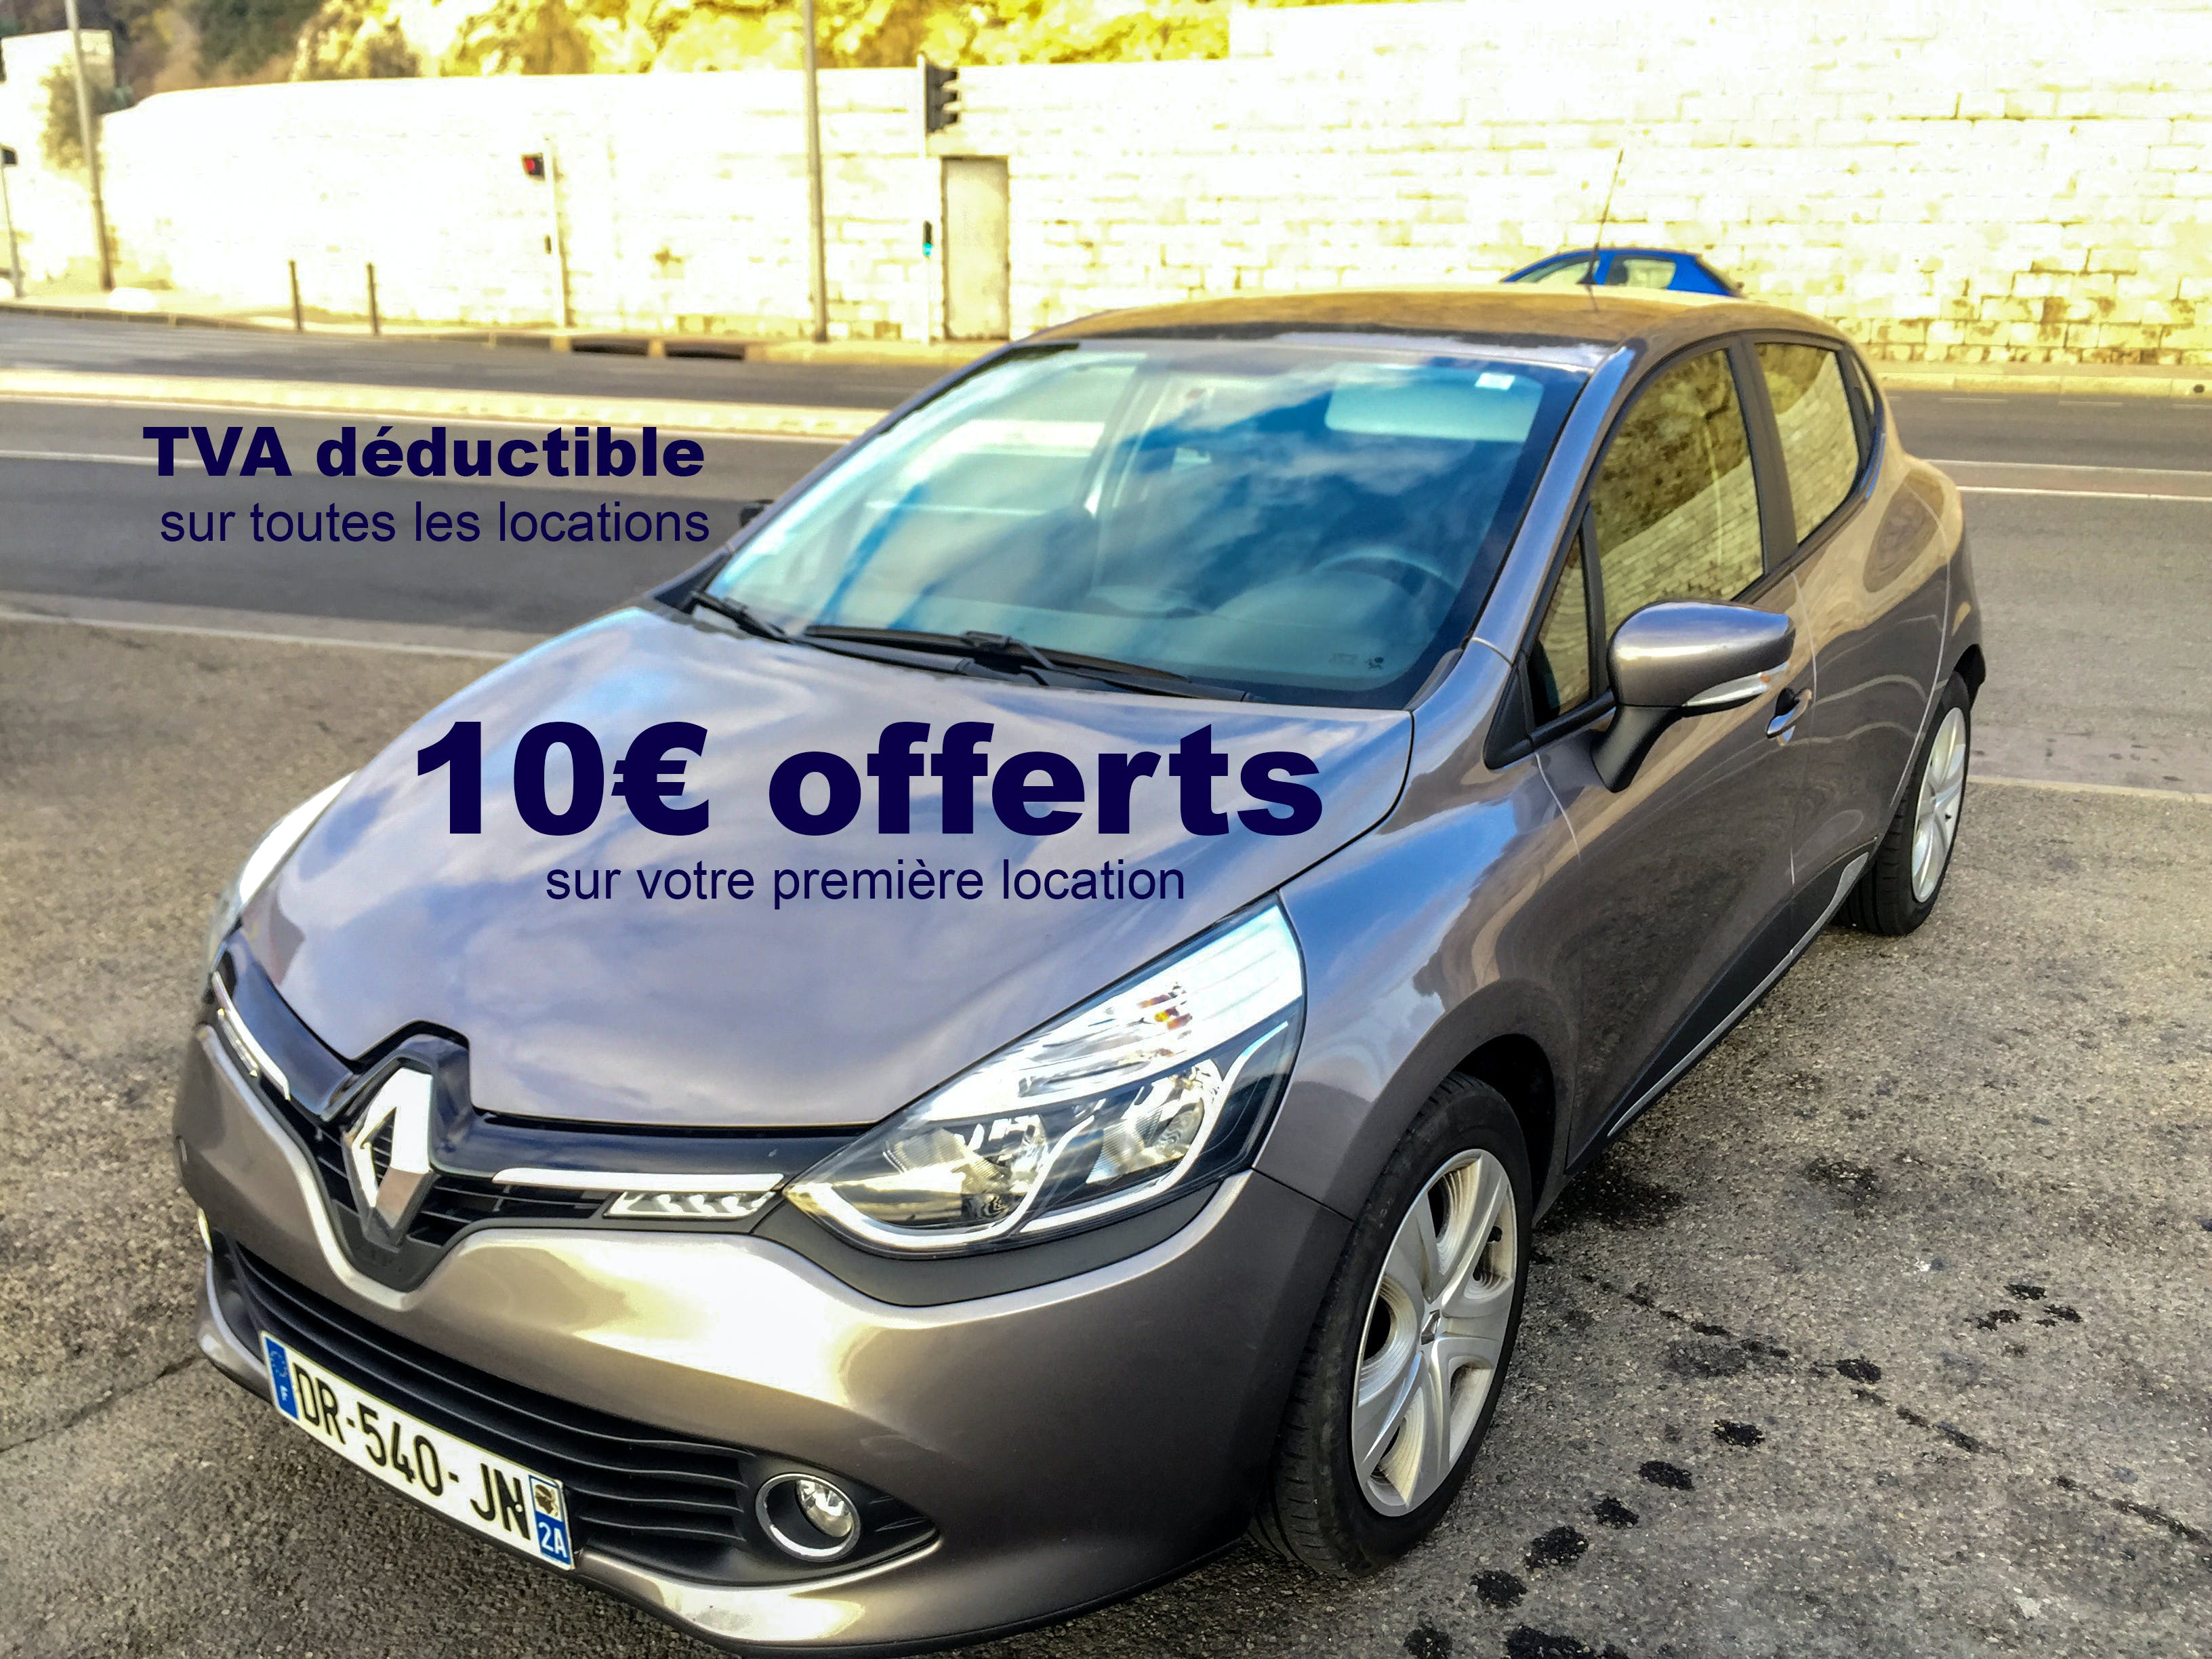 Renault Clio 1.5dci Business Eco, 2015, Diesel